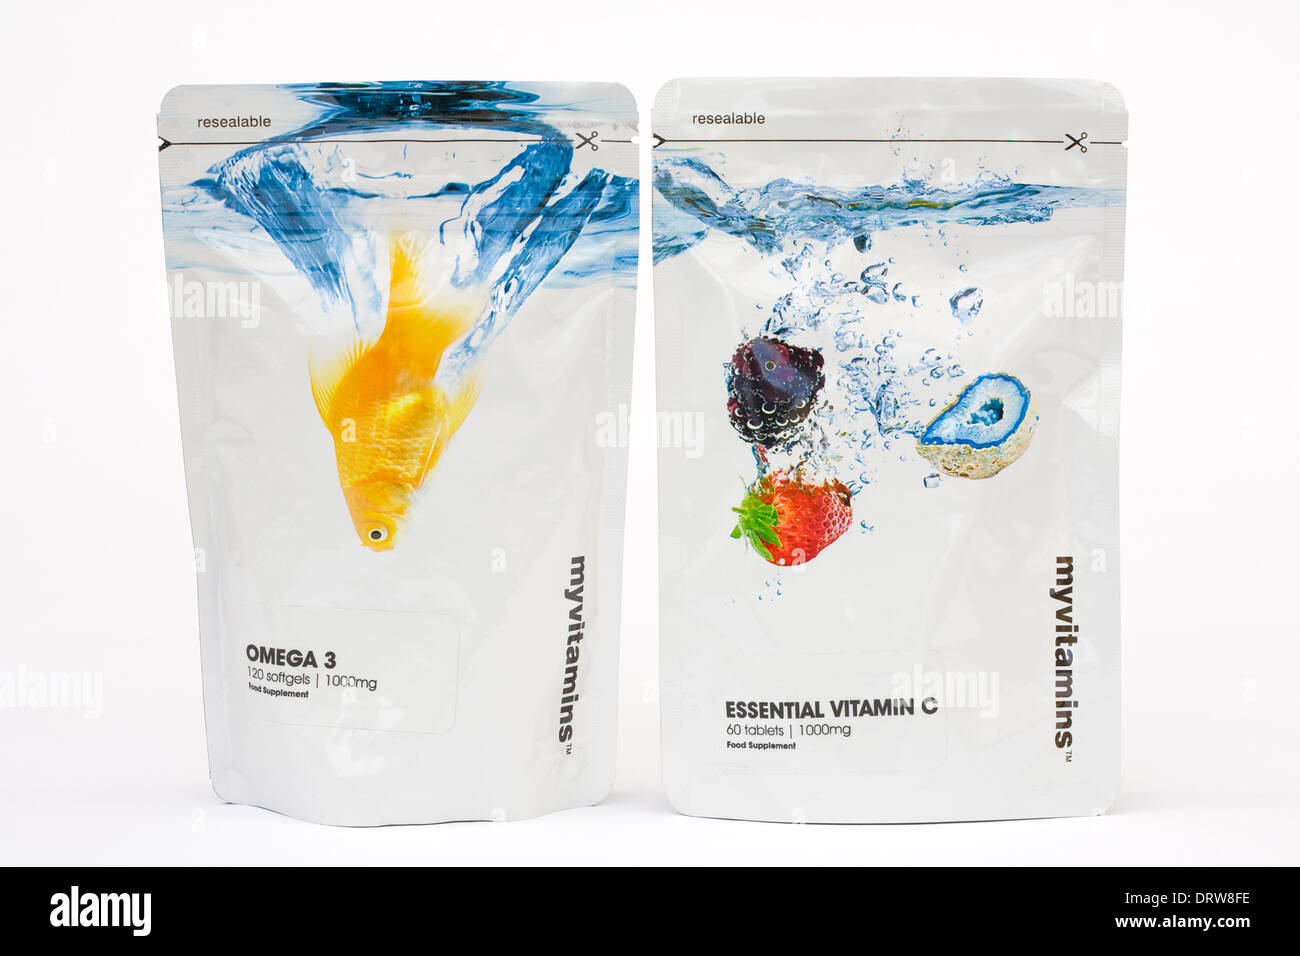 Vitamin C and Omega 3 pouches on a white background. - Stock Image